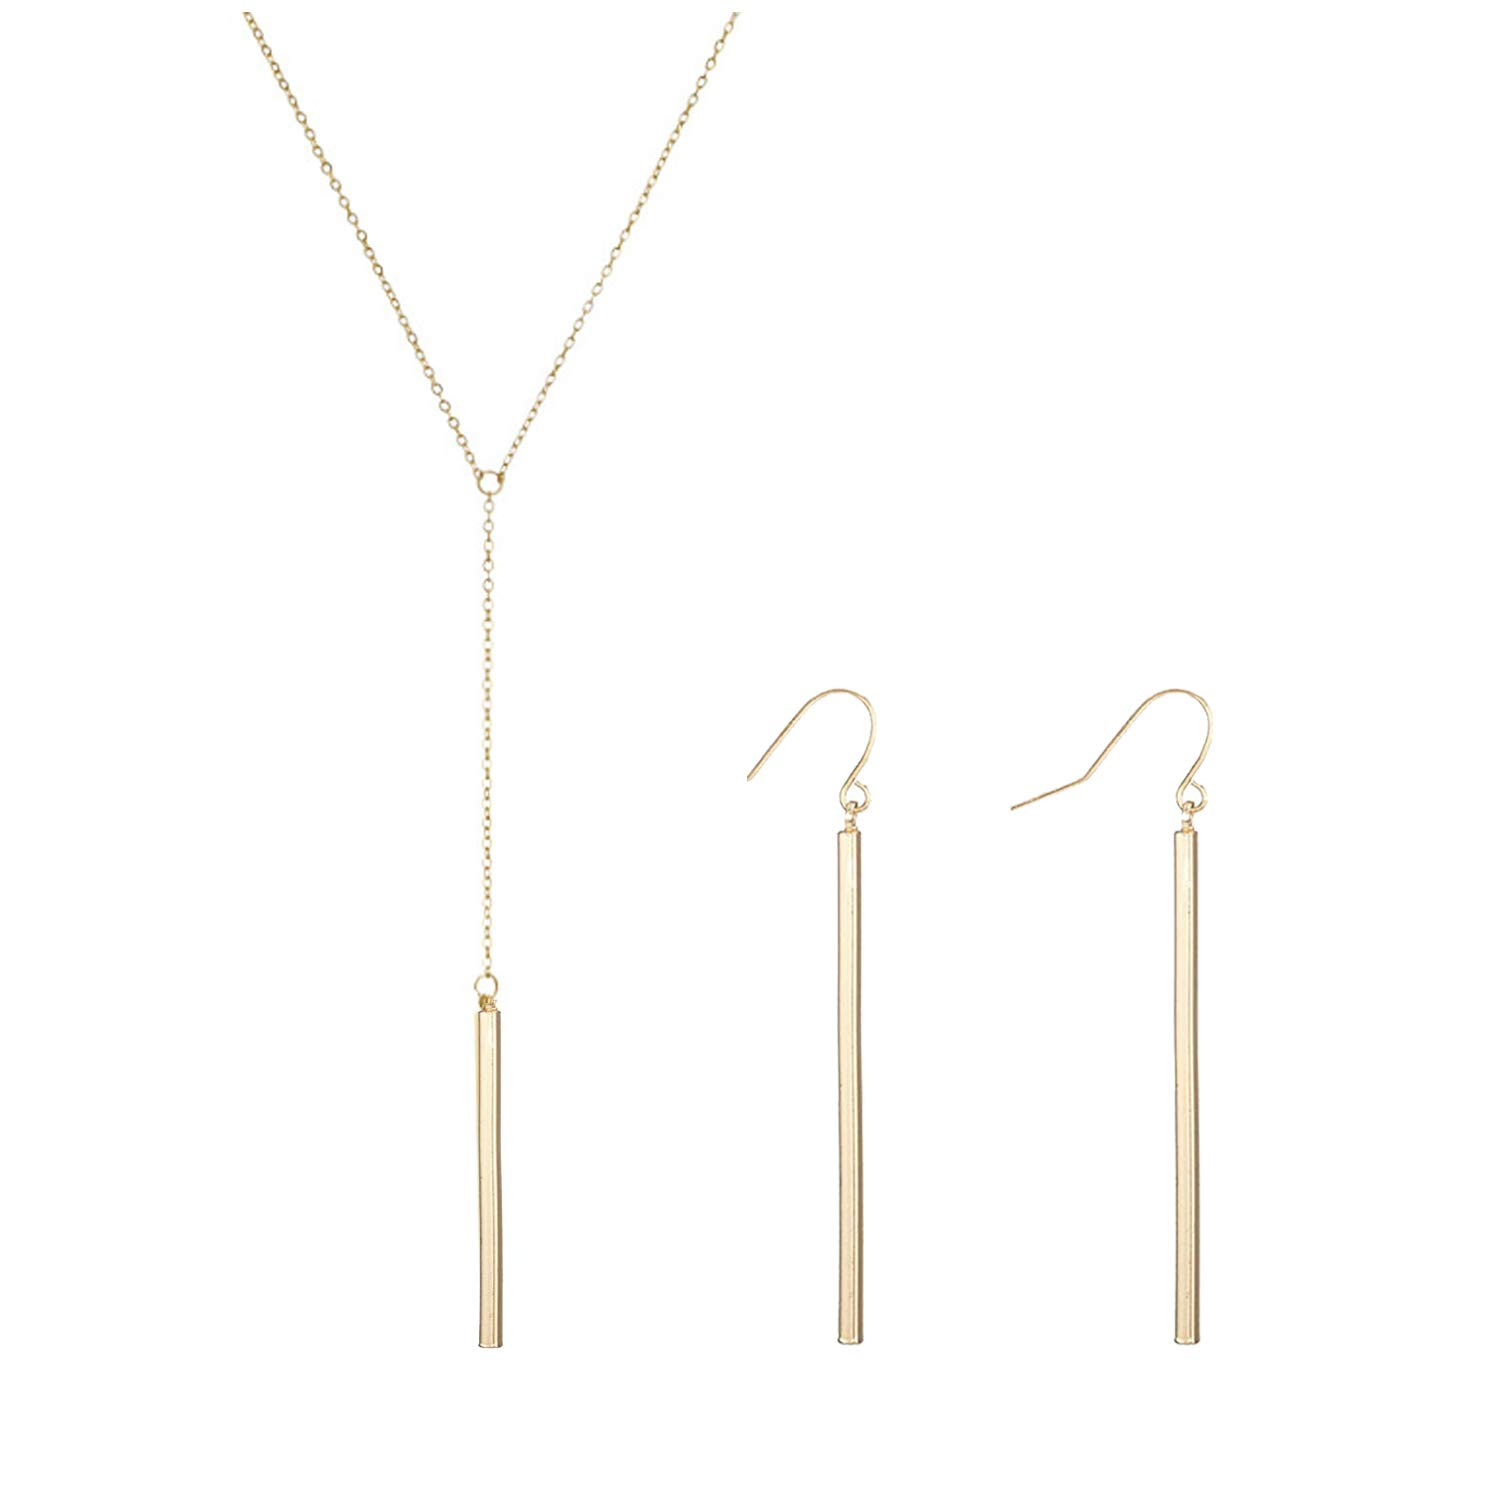 2Pcs Y Pendant Necklace Bar Earring Set Lariat Necklace Long Stick Drop Dangle Earring for Women